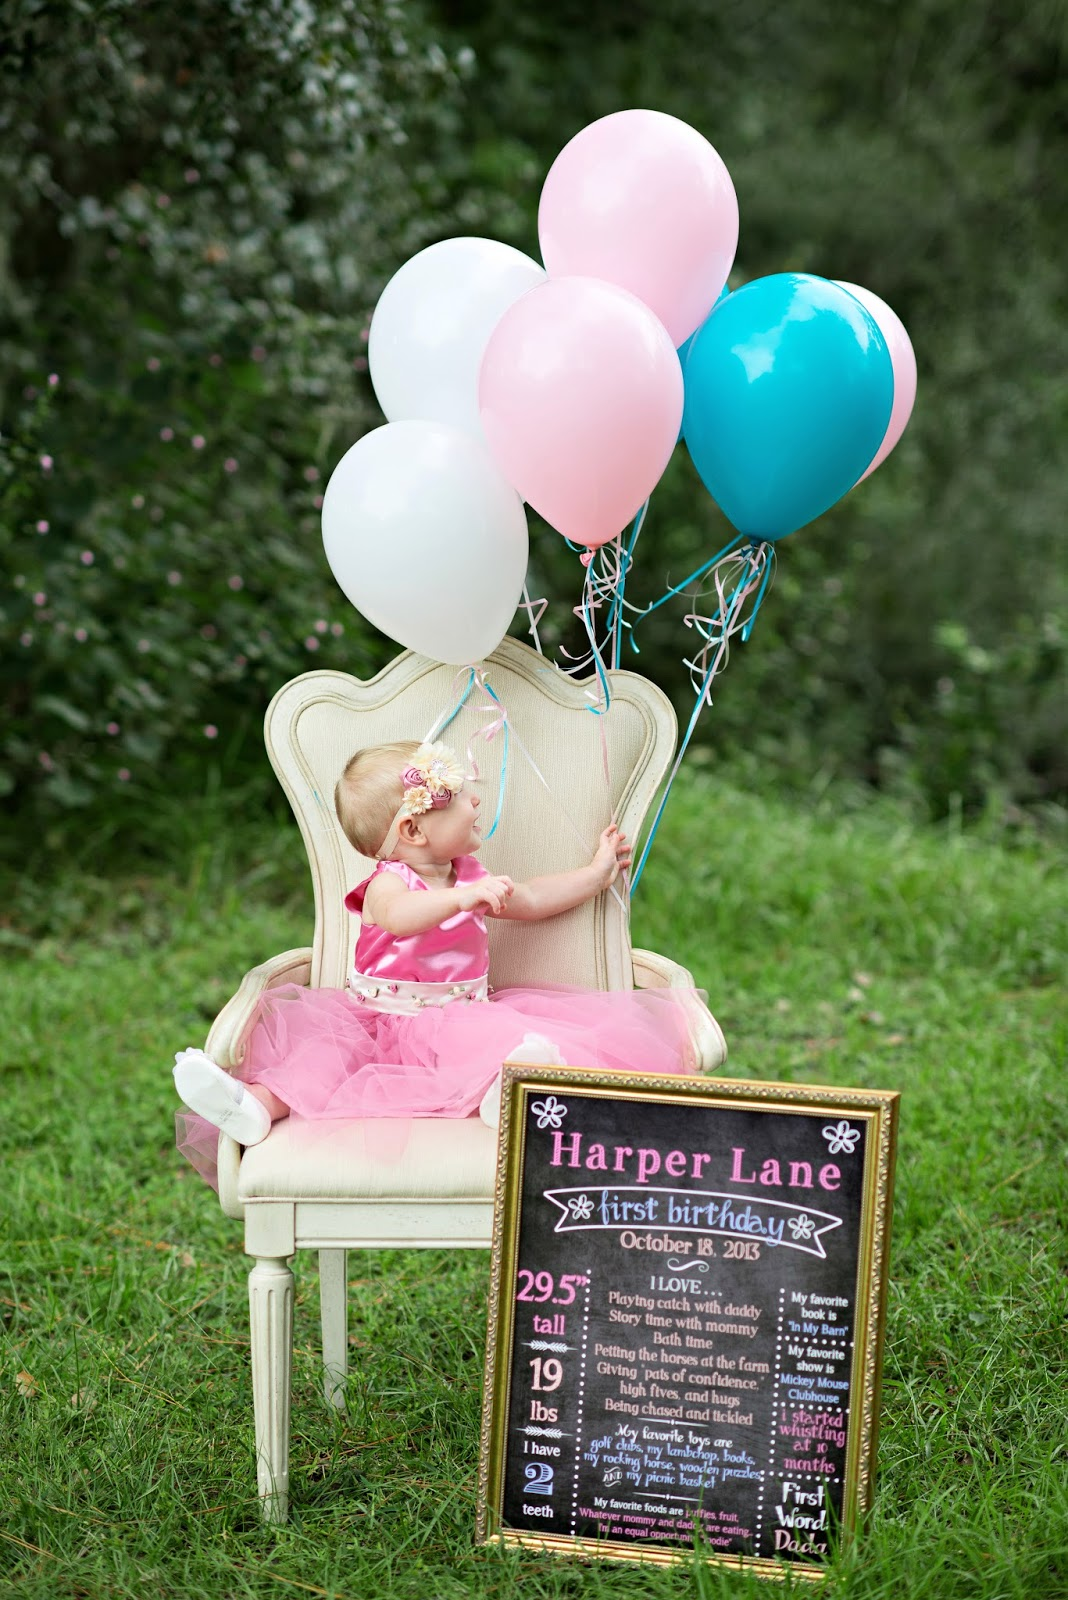 Walgreens Photo: Same Day Prints, Cards, Books, and Third birthday photo shoot ideas